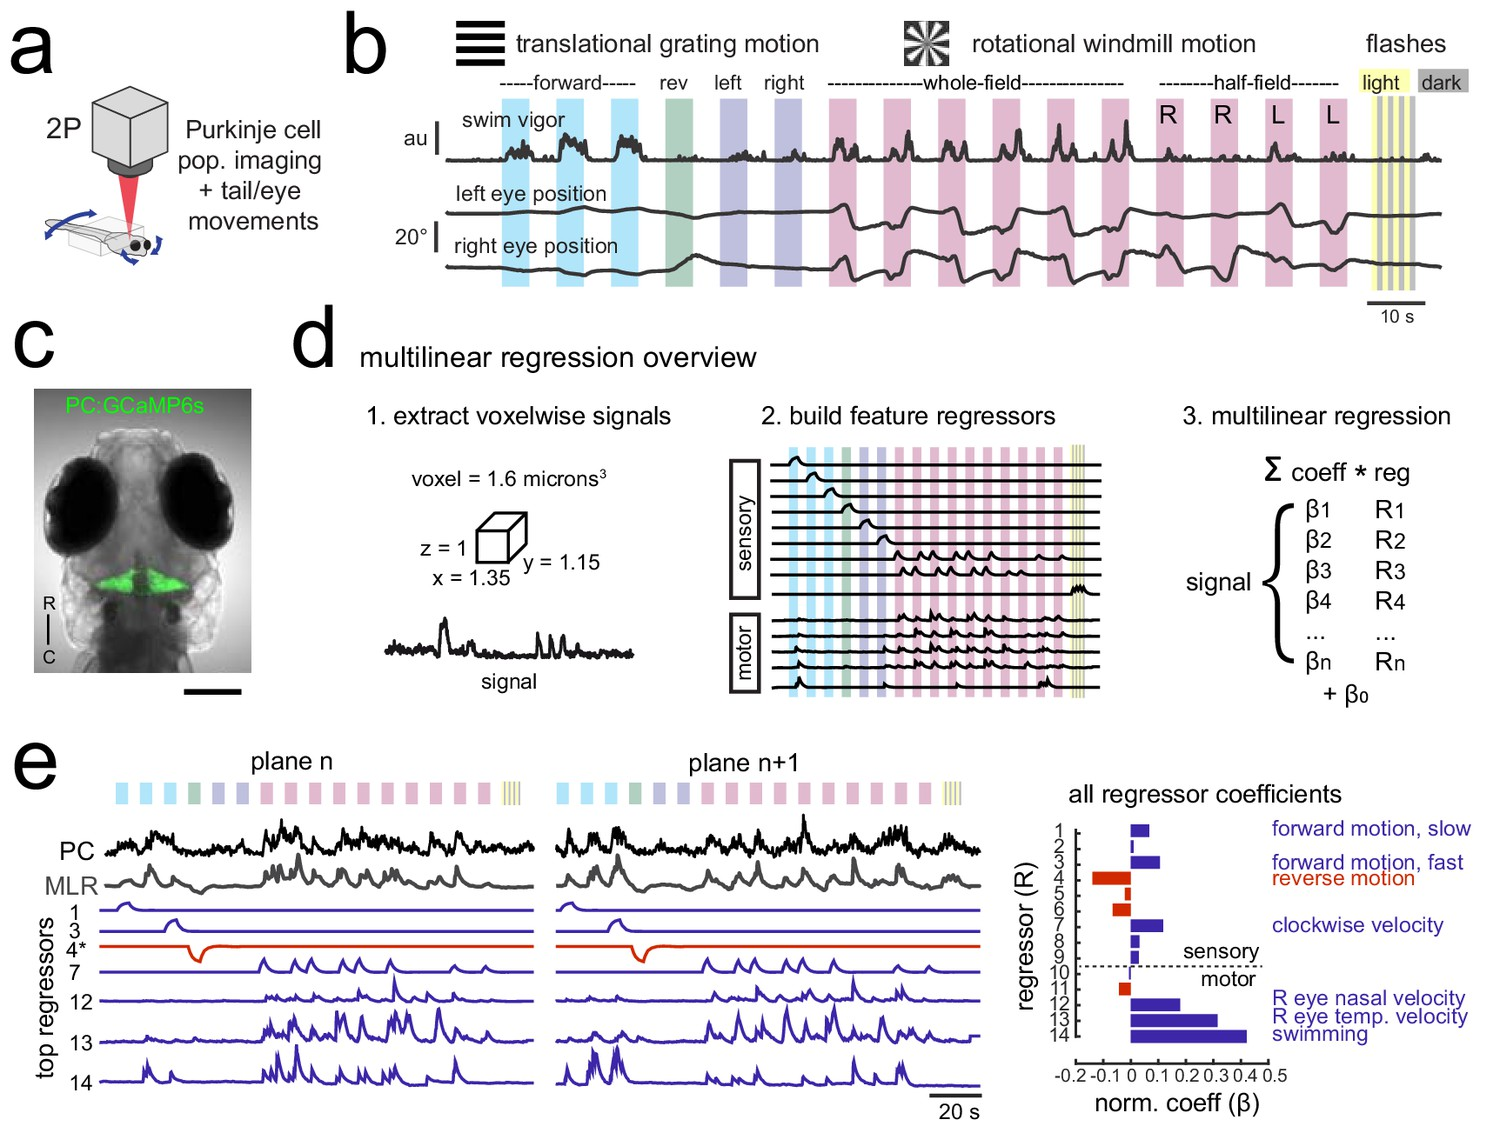 Motor context dominates output from purkinje cell functional regions